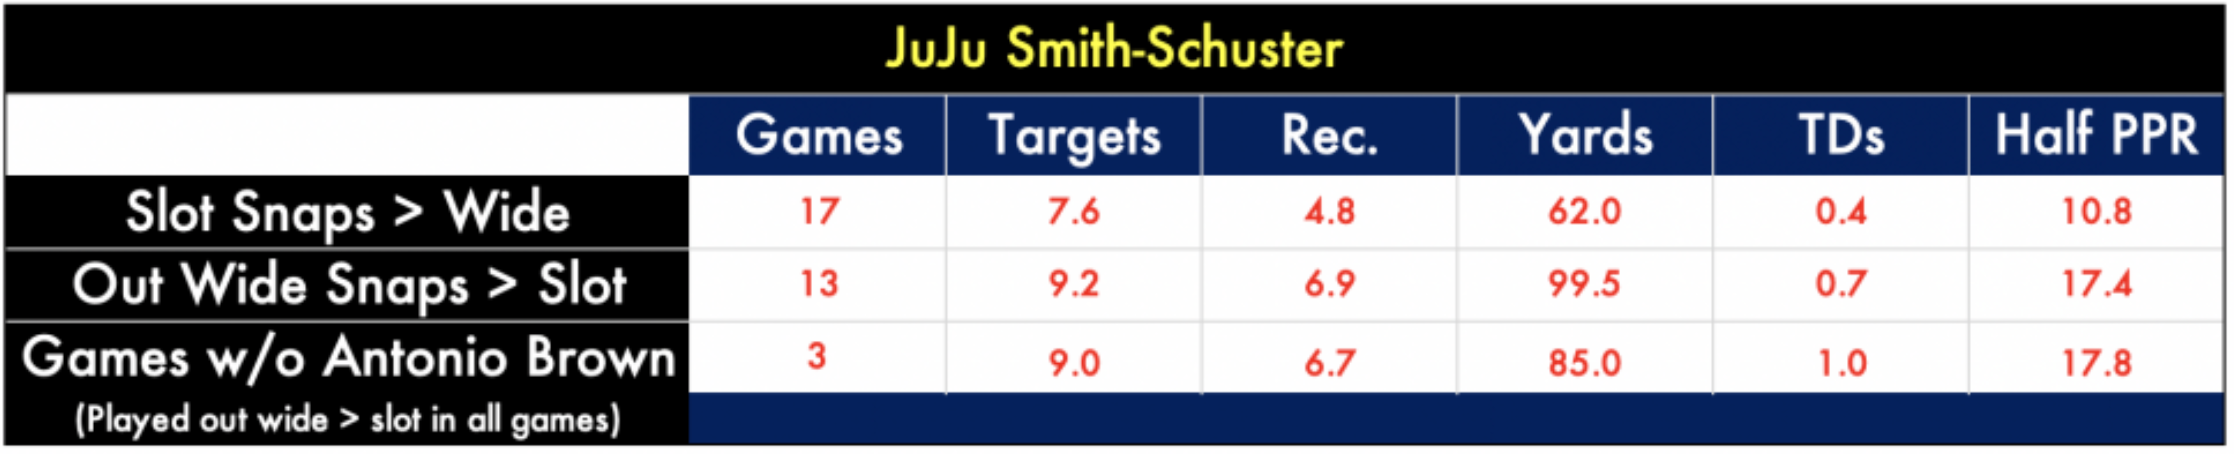 juju smith schuster 2019 fantasy